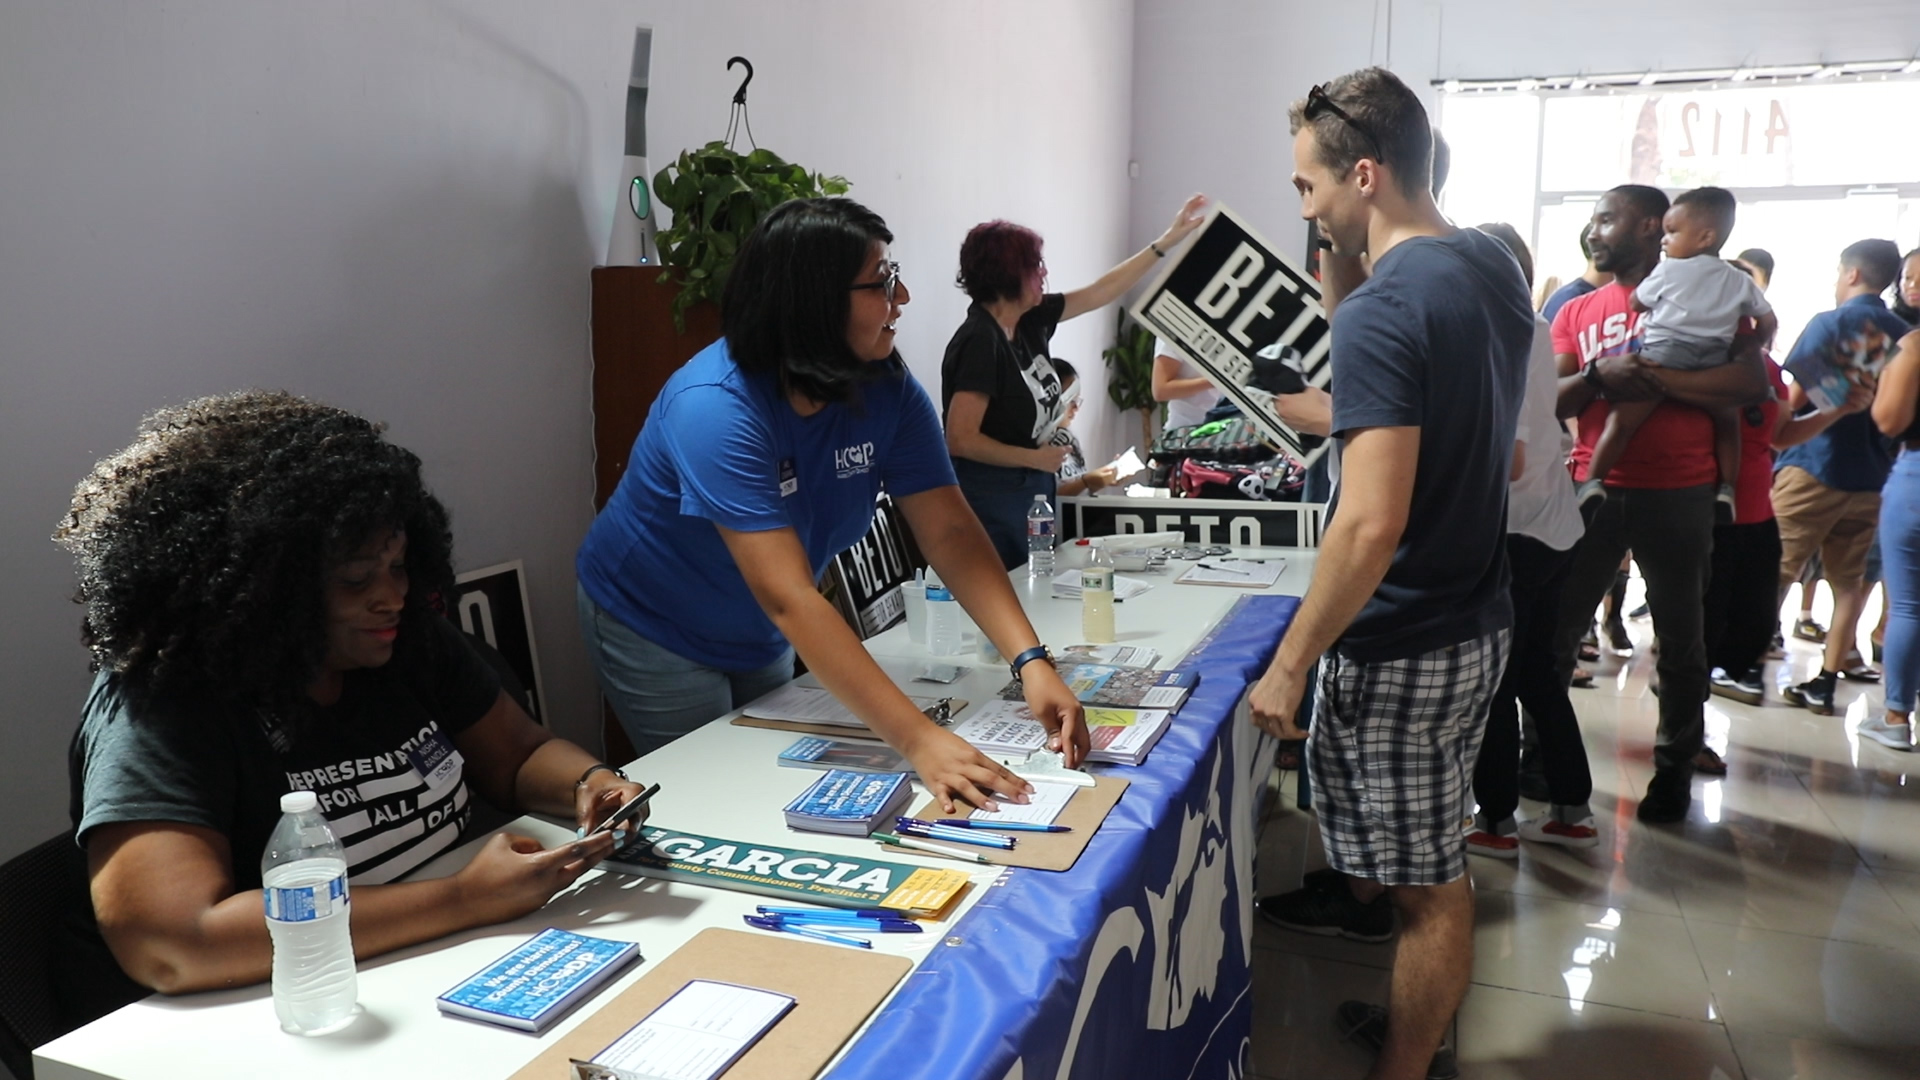 Local organizations set up tables to register people to vote at a Beto O'Rourke rally.